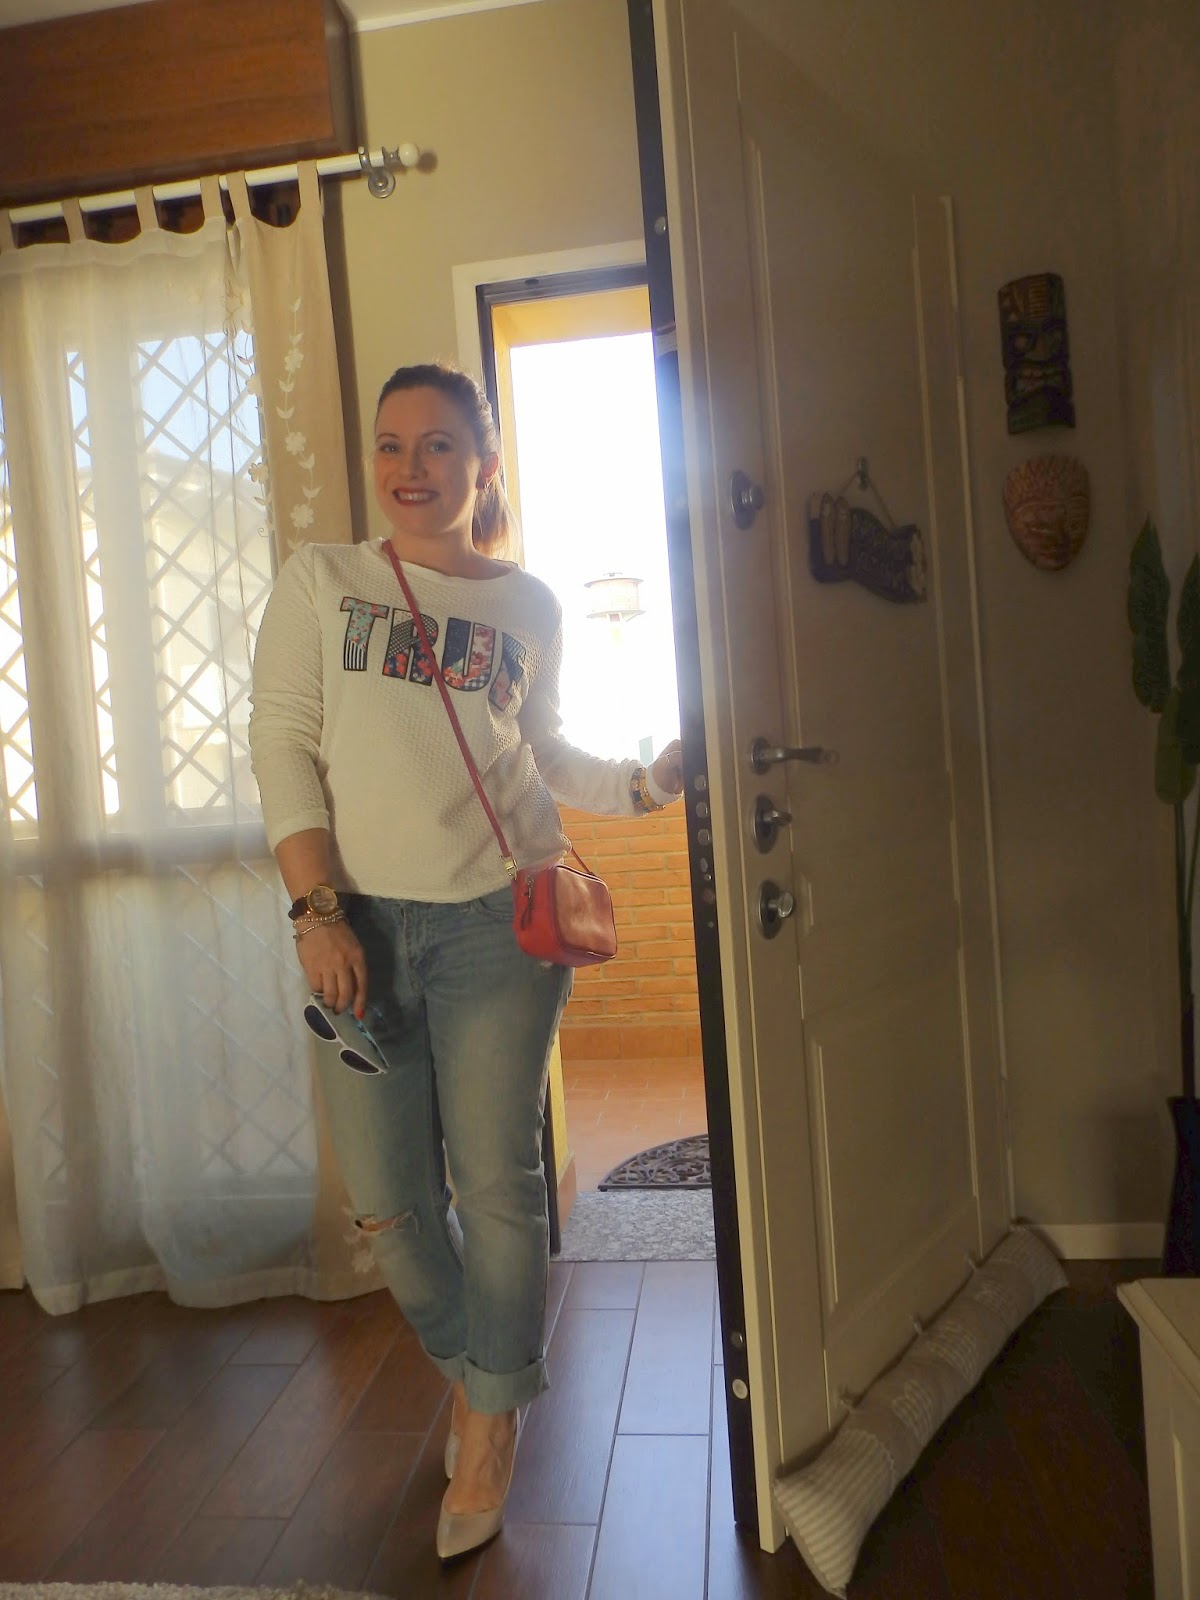 fashion blog, fashion blogger, purses in the kitchen, outfit post, felpa con scritta, stradivarius, zara, Excape, occhiali da sole camo, mini bag, orologio Millelire, Millelire, Forever 21, Levis, boyfriend jeans,